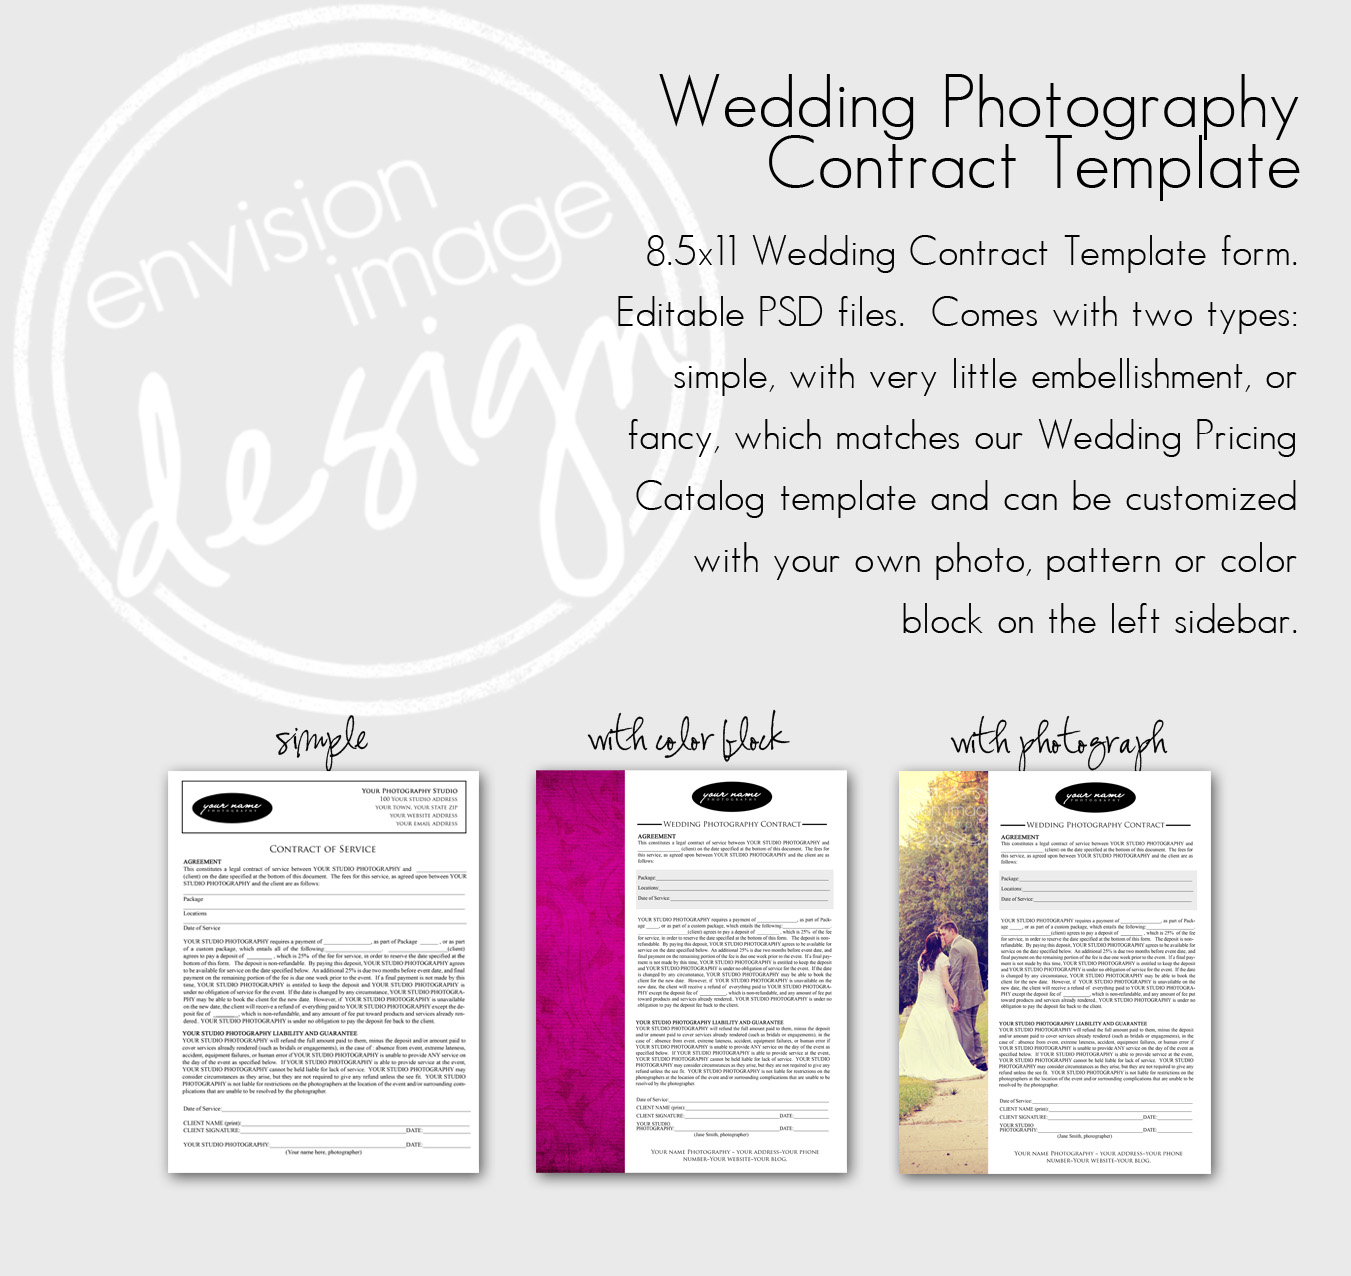 Envision Image Design Wedding Photography Contract Form Template